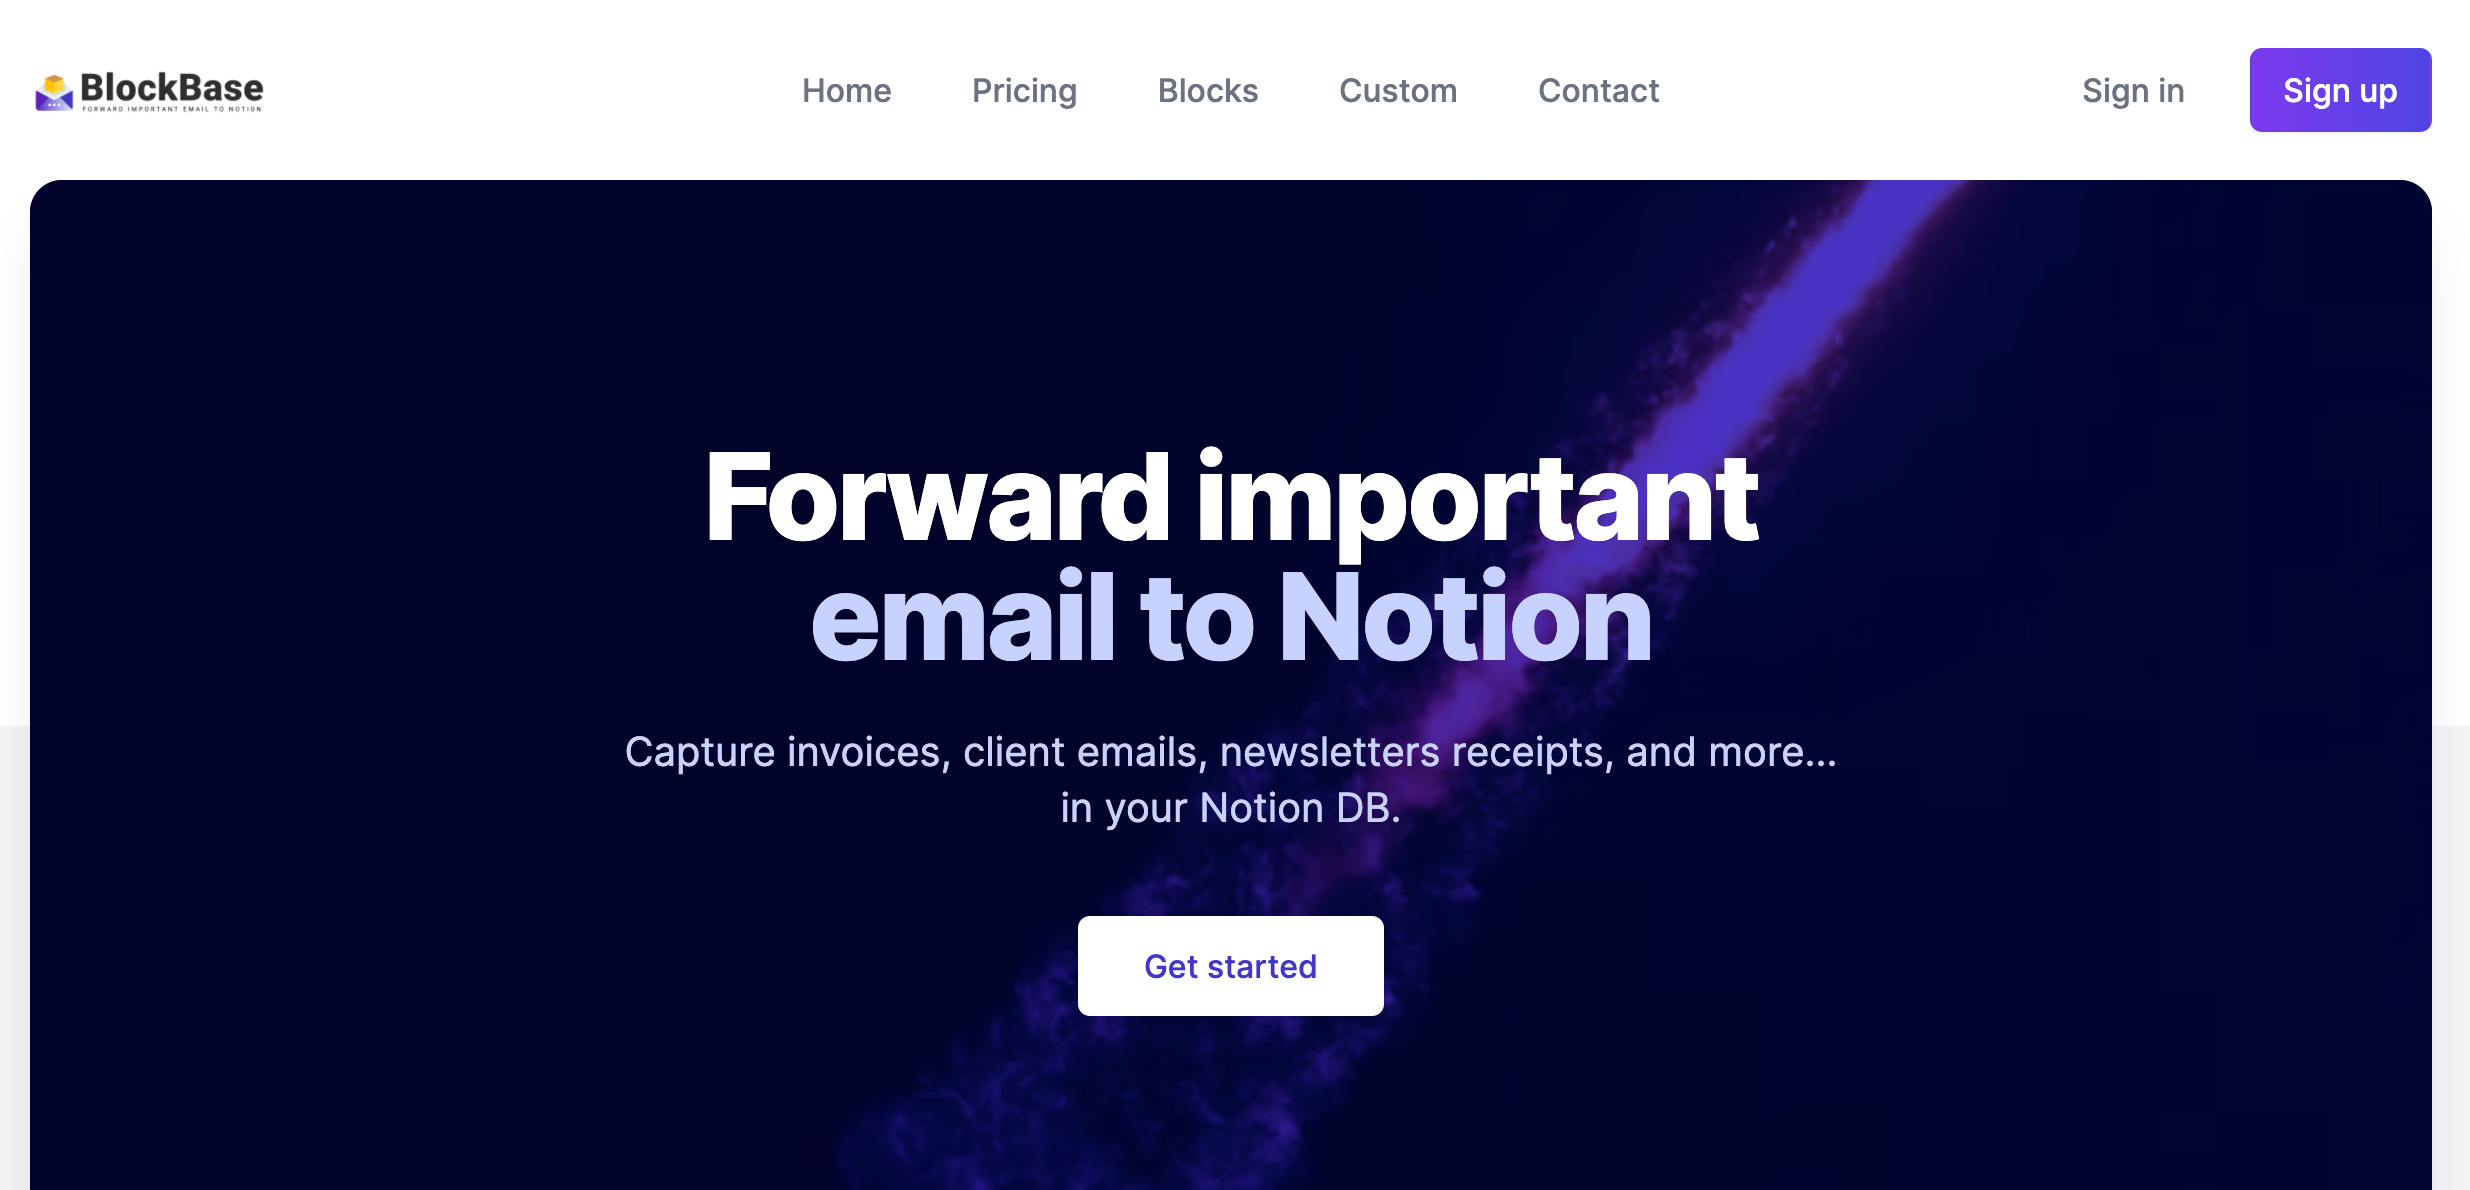 BlockBase_dev__Forward_important_email_to_Notion.png